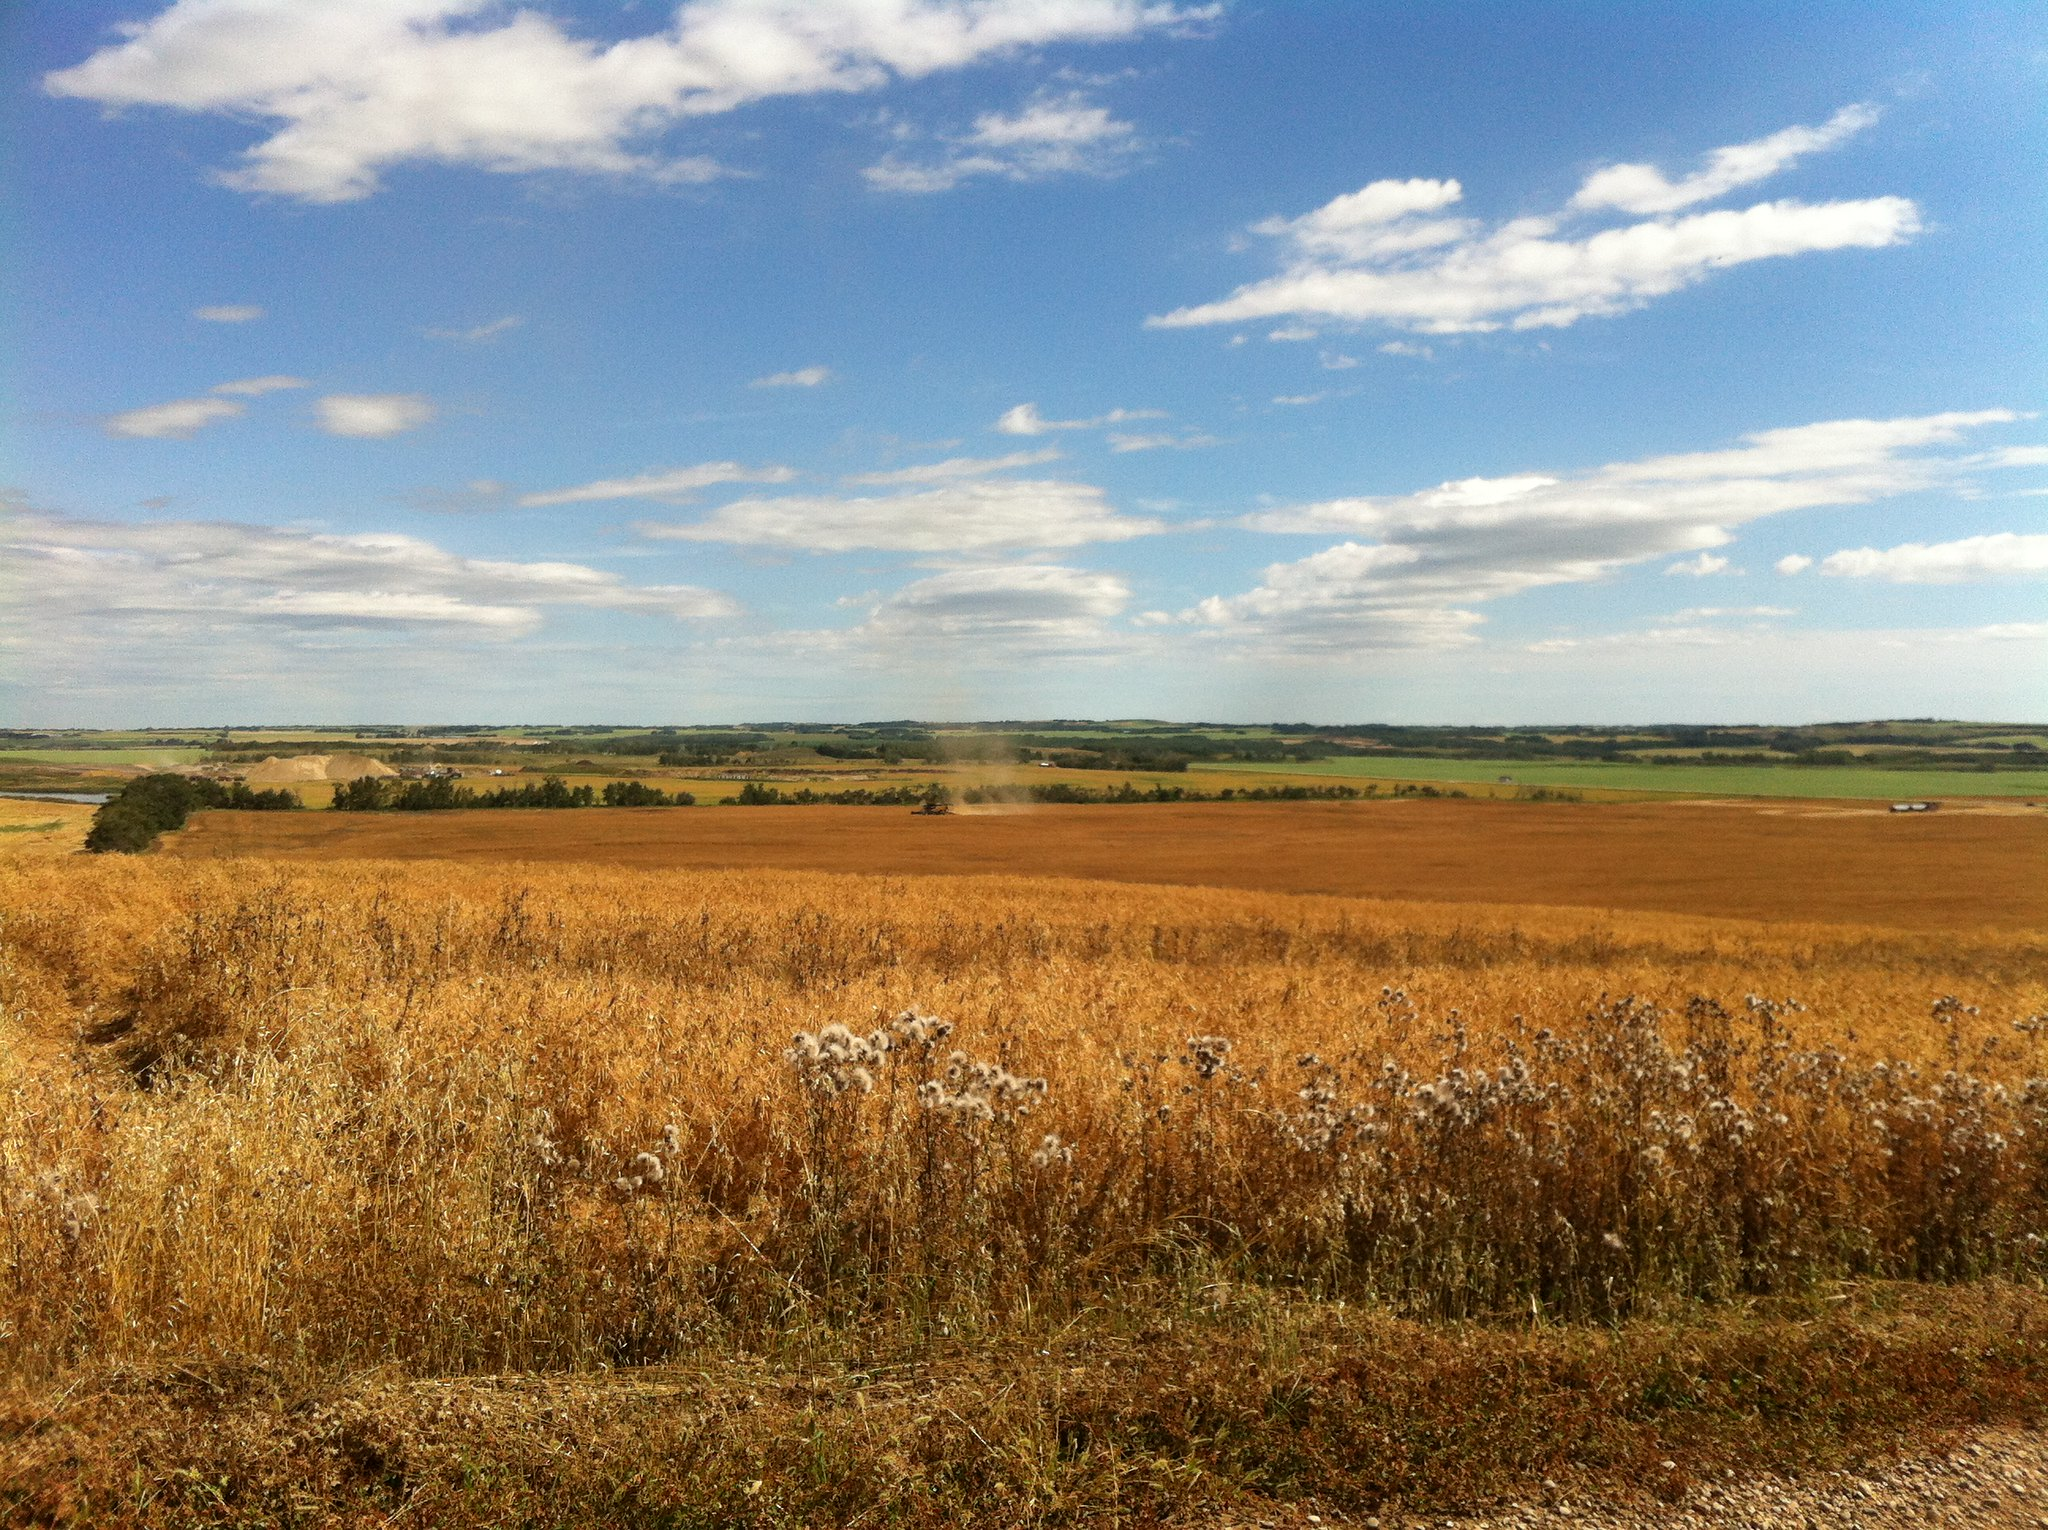 Prairies. Early harvest.